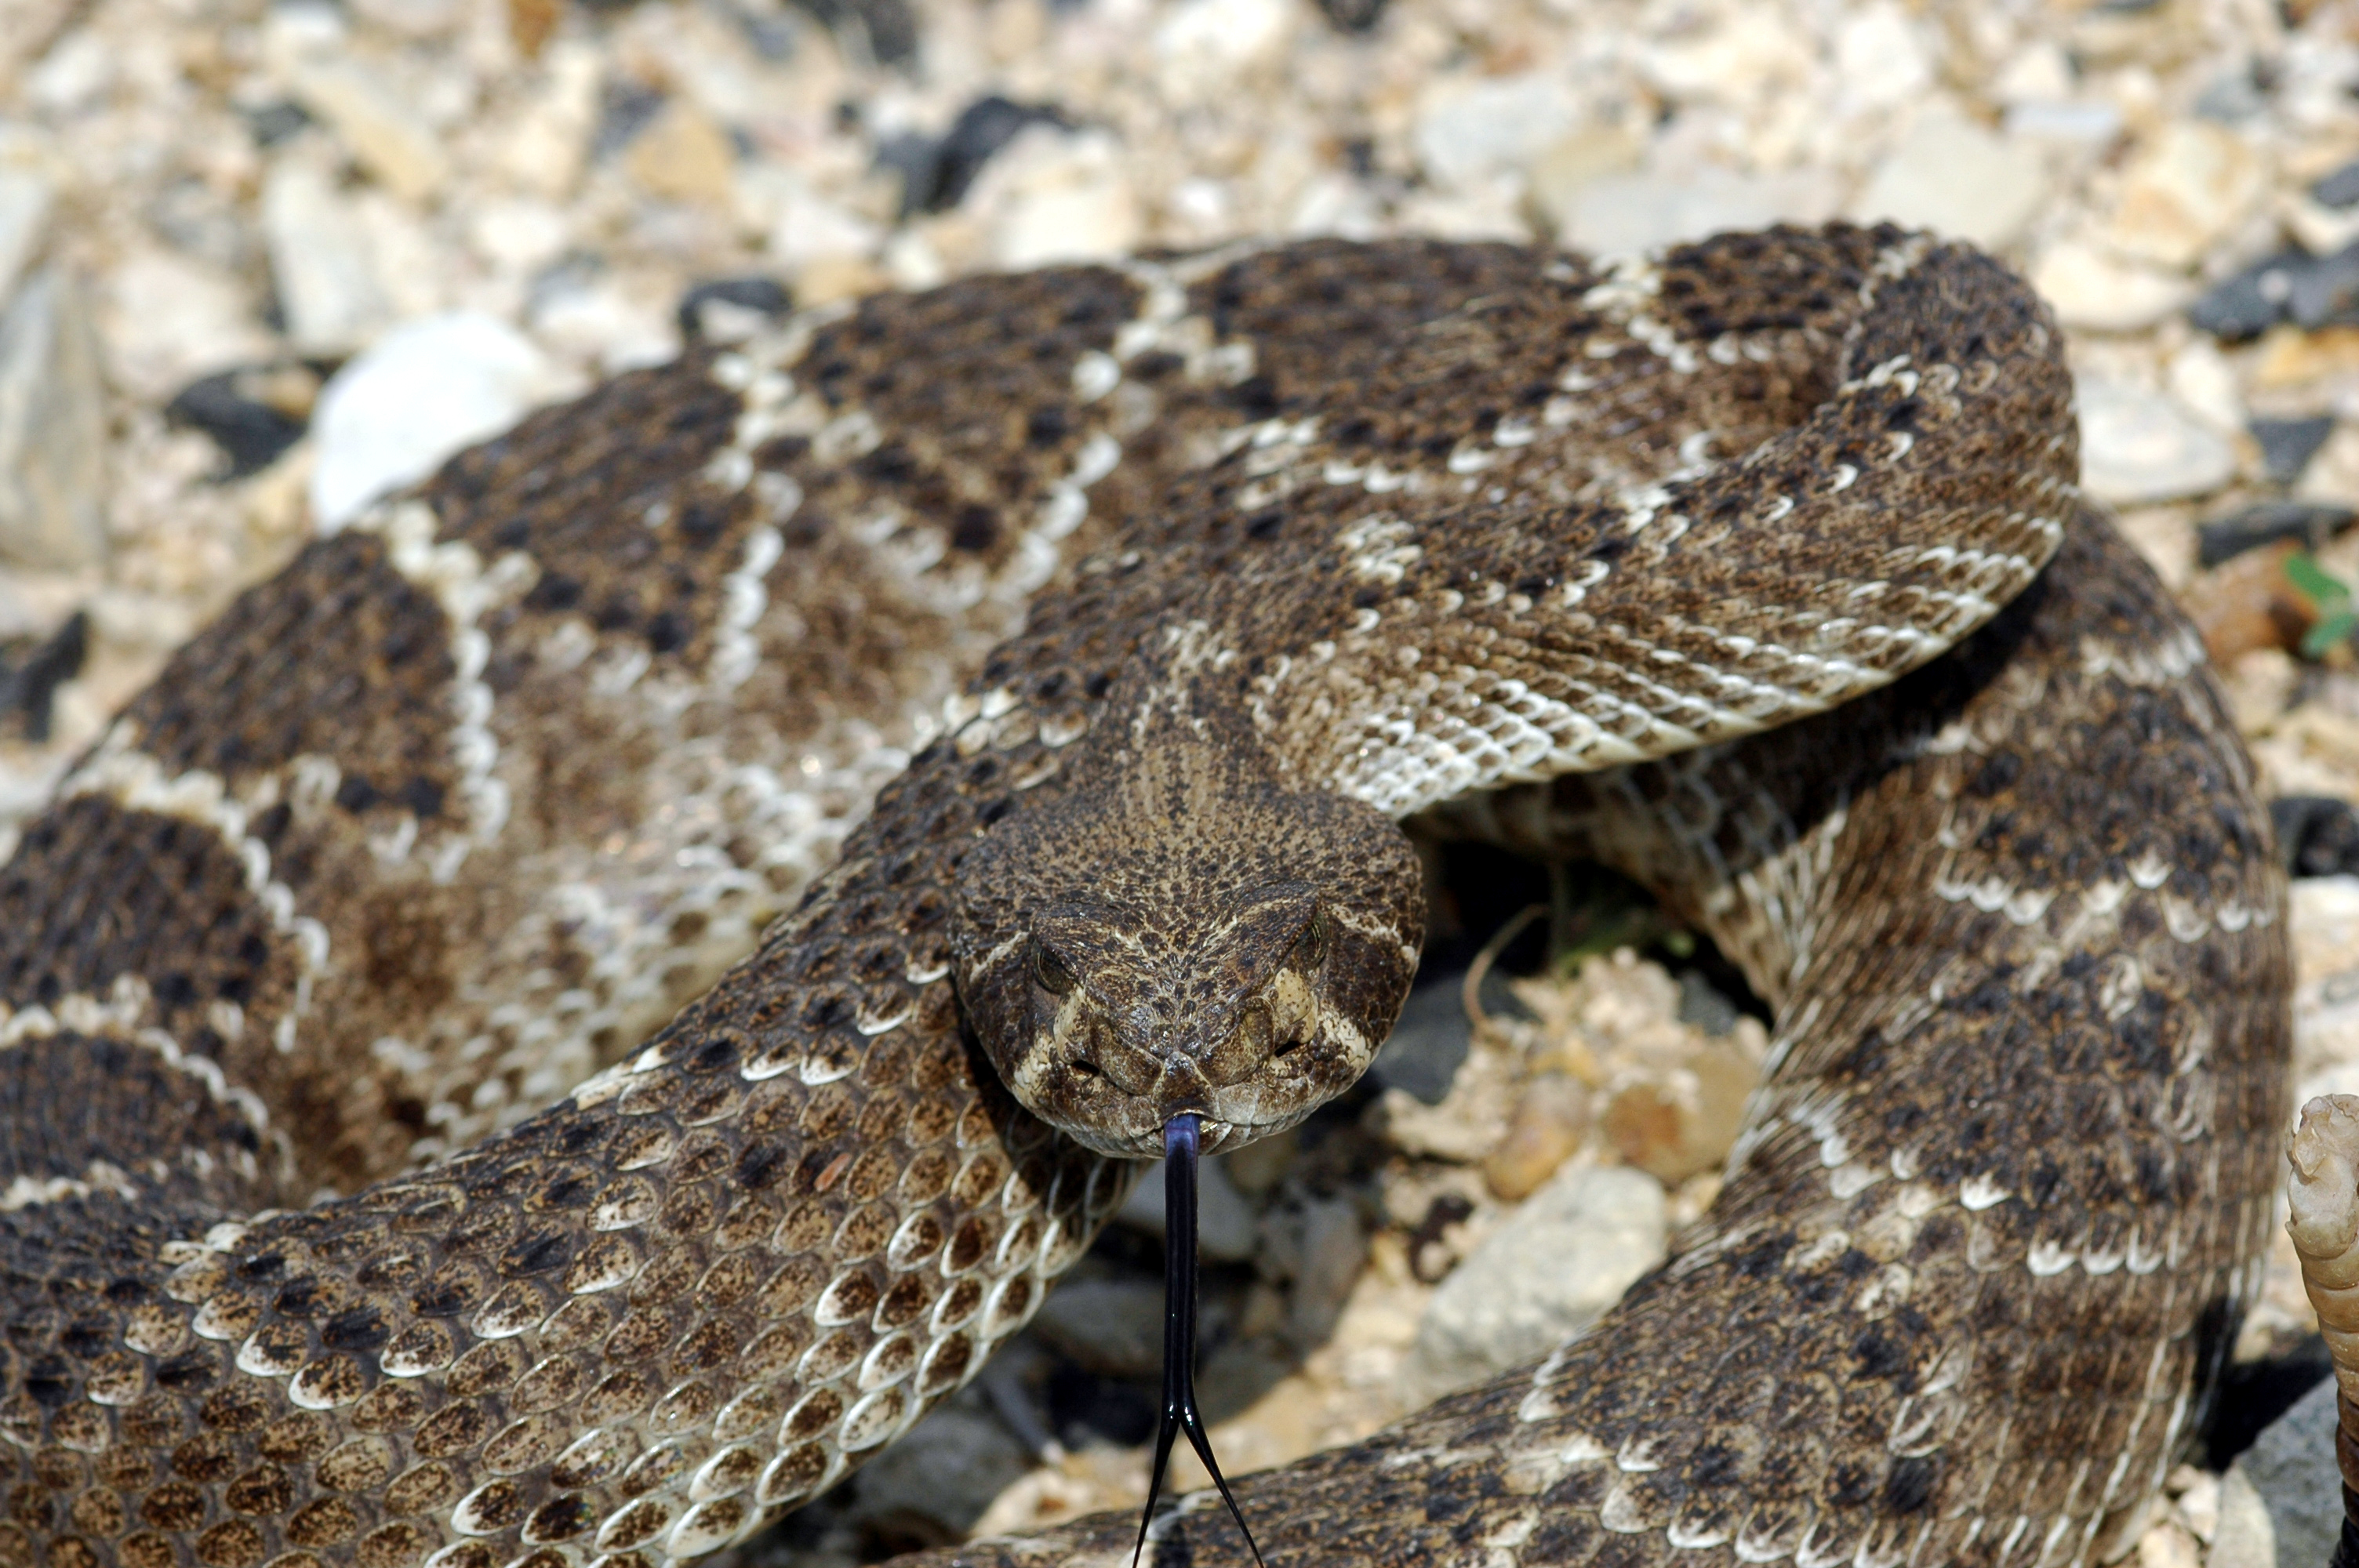 Animals snakes Reptiles rattlesnakes HD Wallpaper